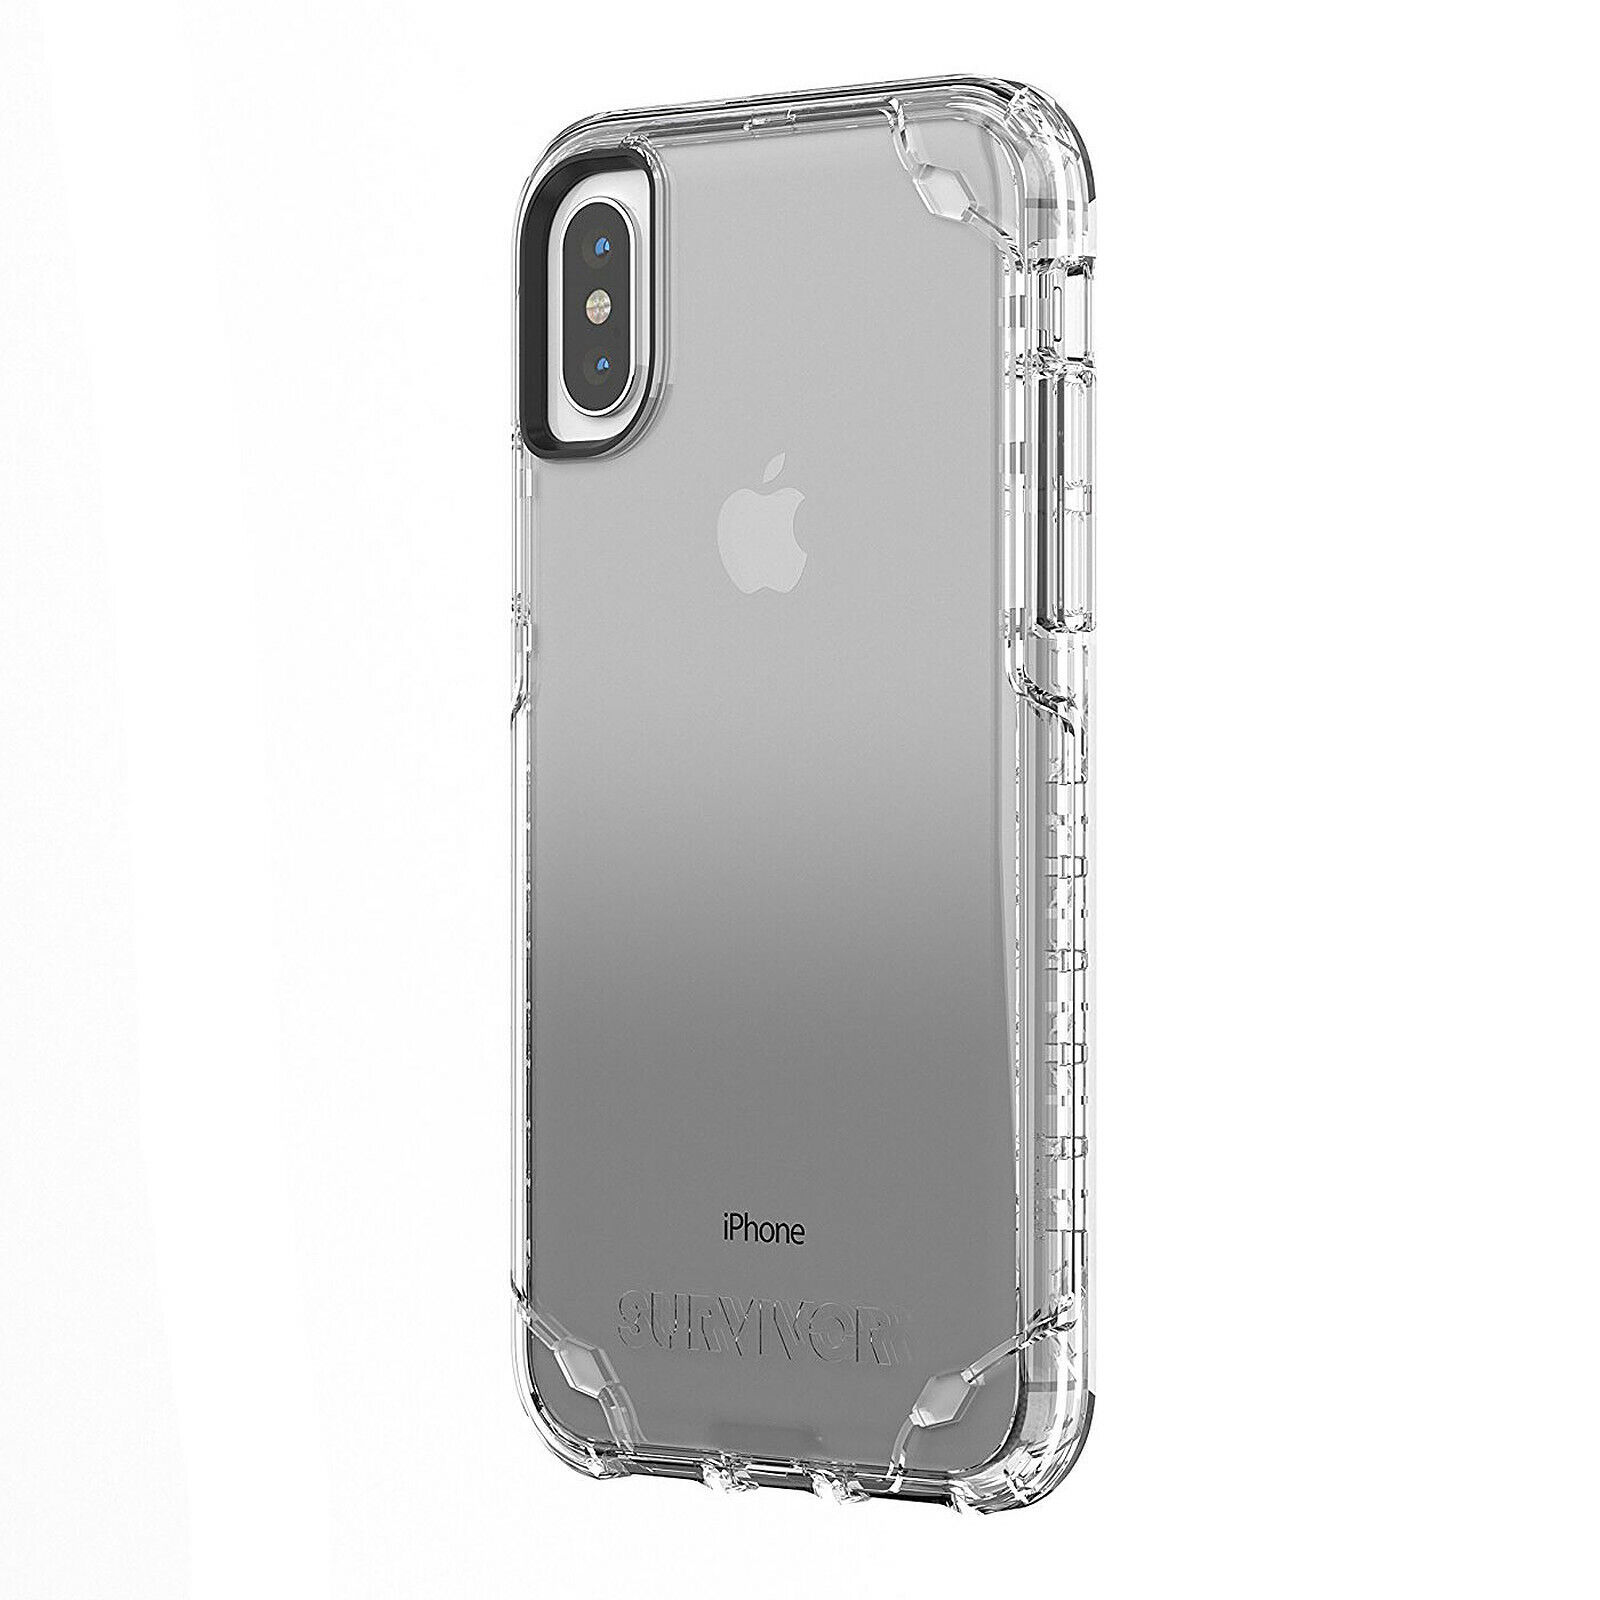 Coque iPhone 7, Premium TPU Souple Silicone-TRANSPARENT